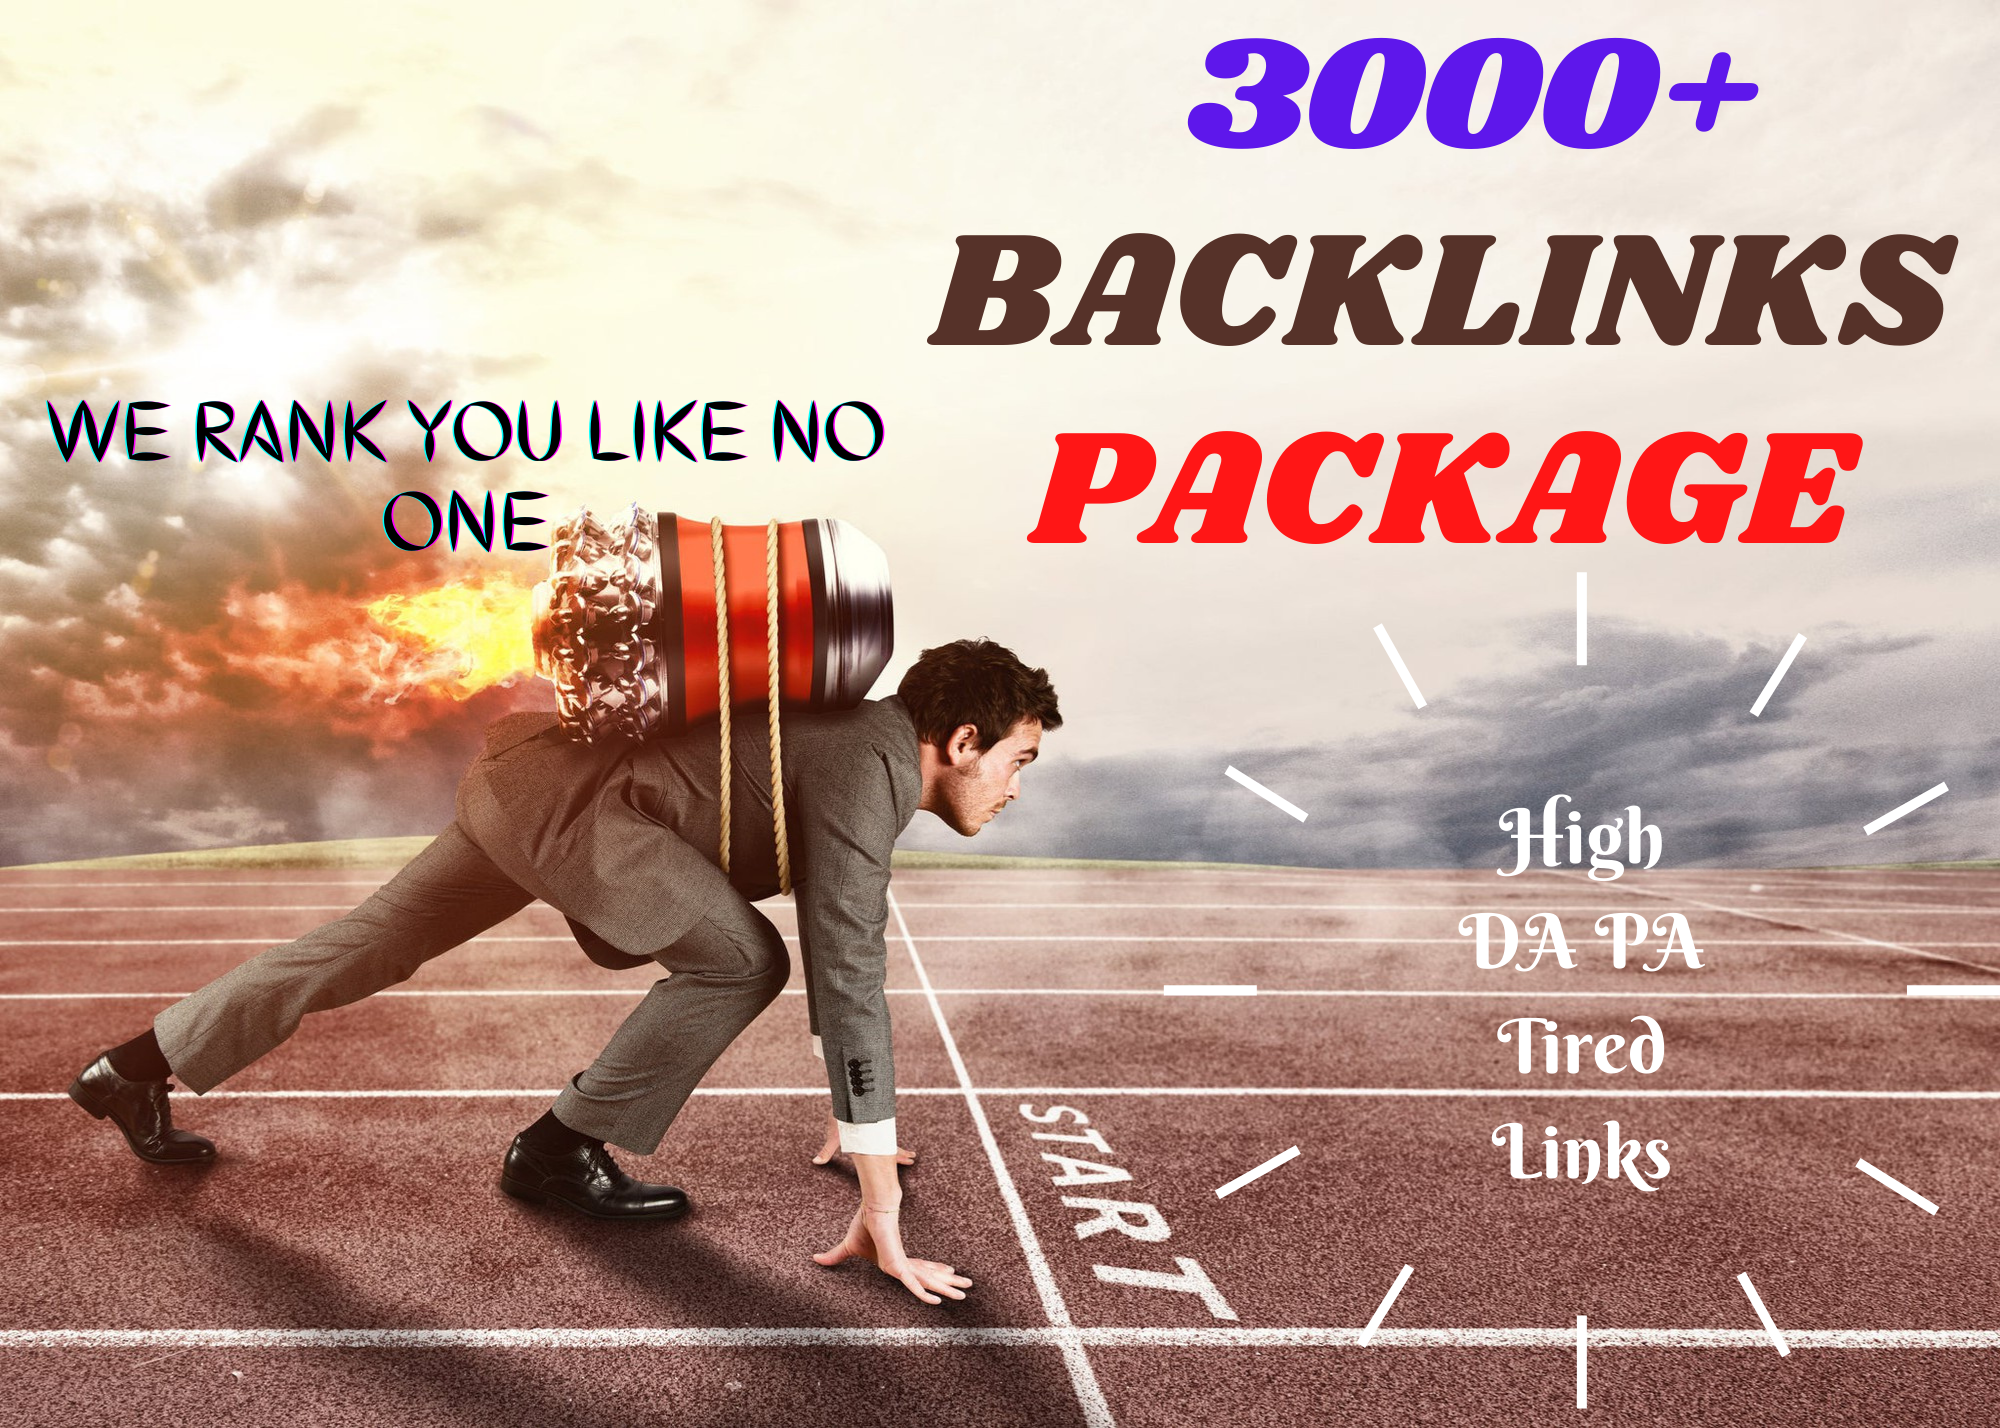 3000 High DA PA Tired LInk Backlinks to Skyrocket Your Ranking On Google